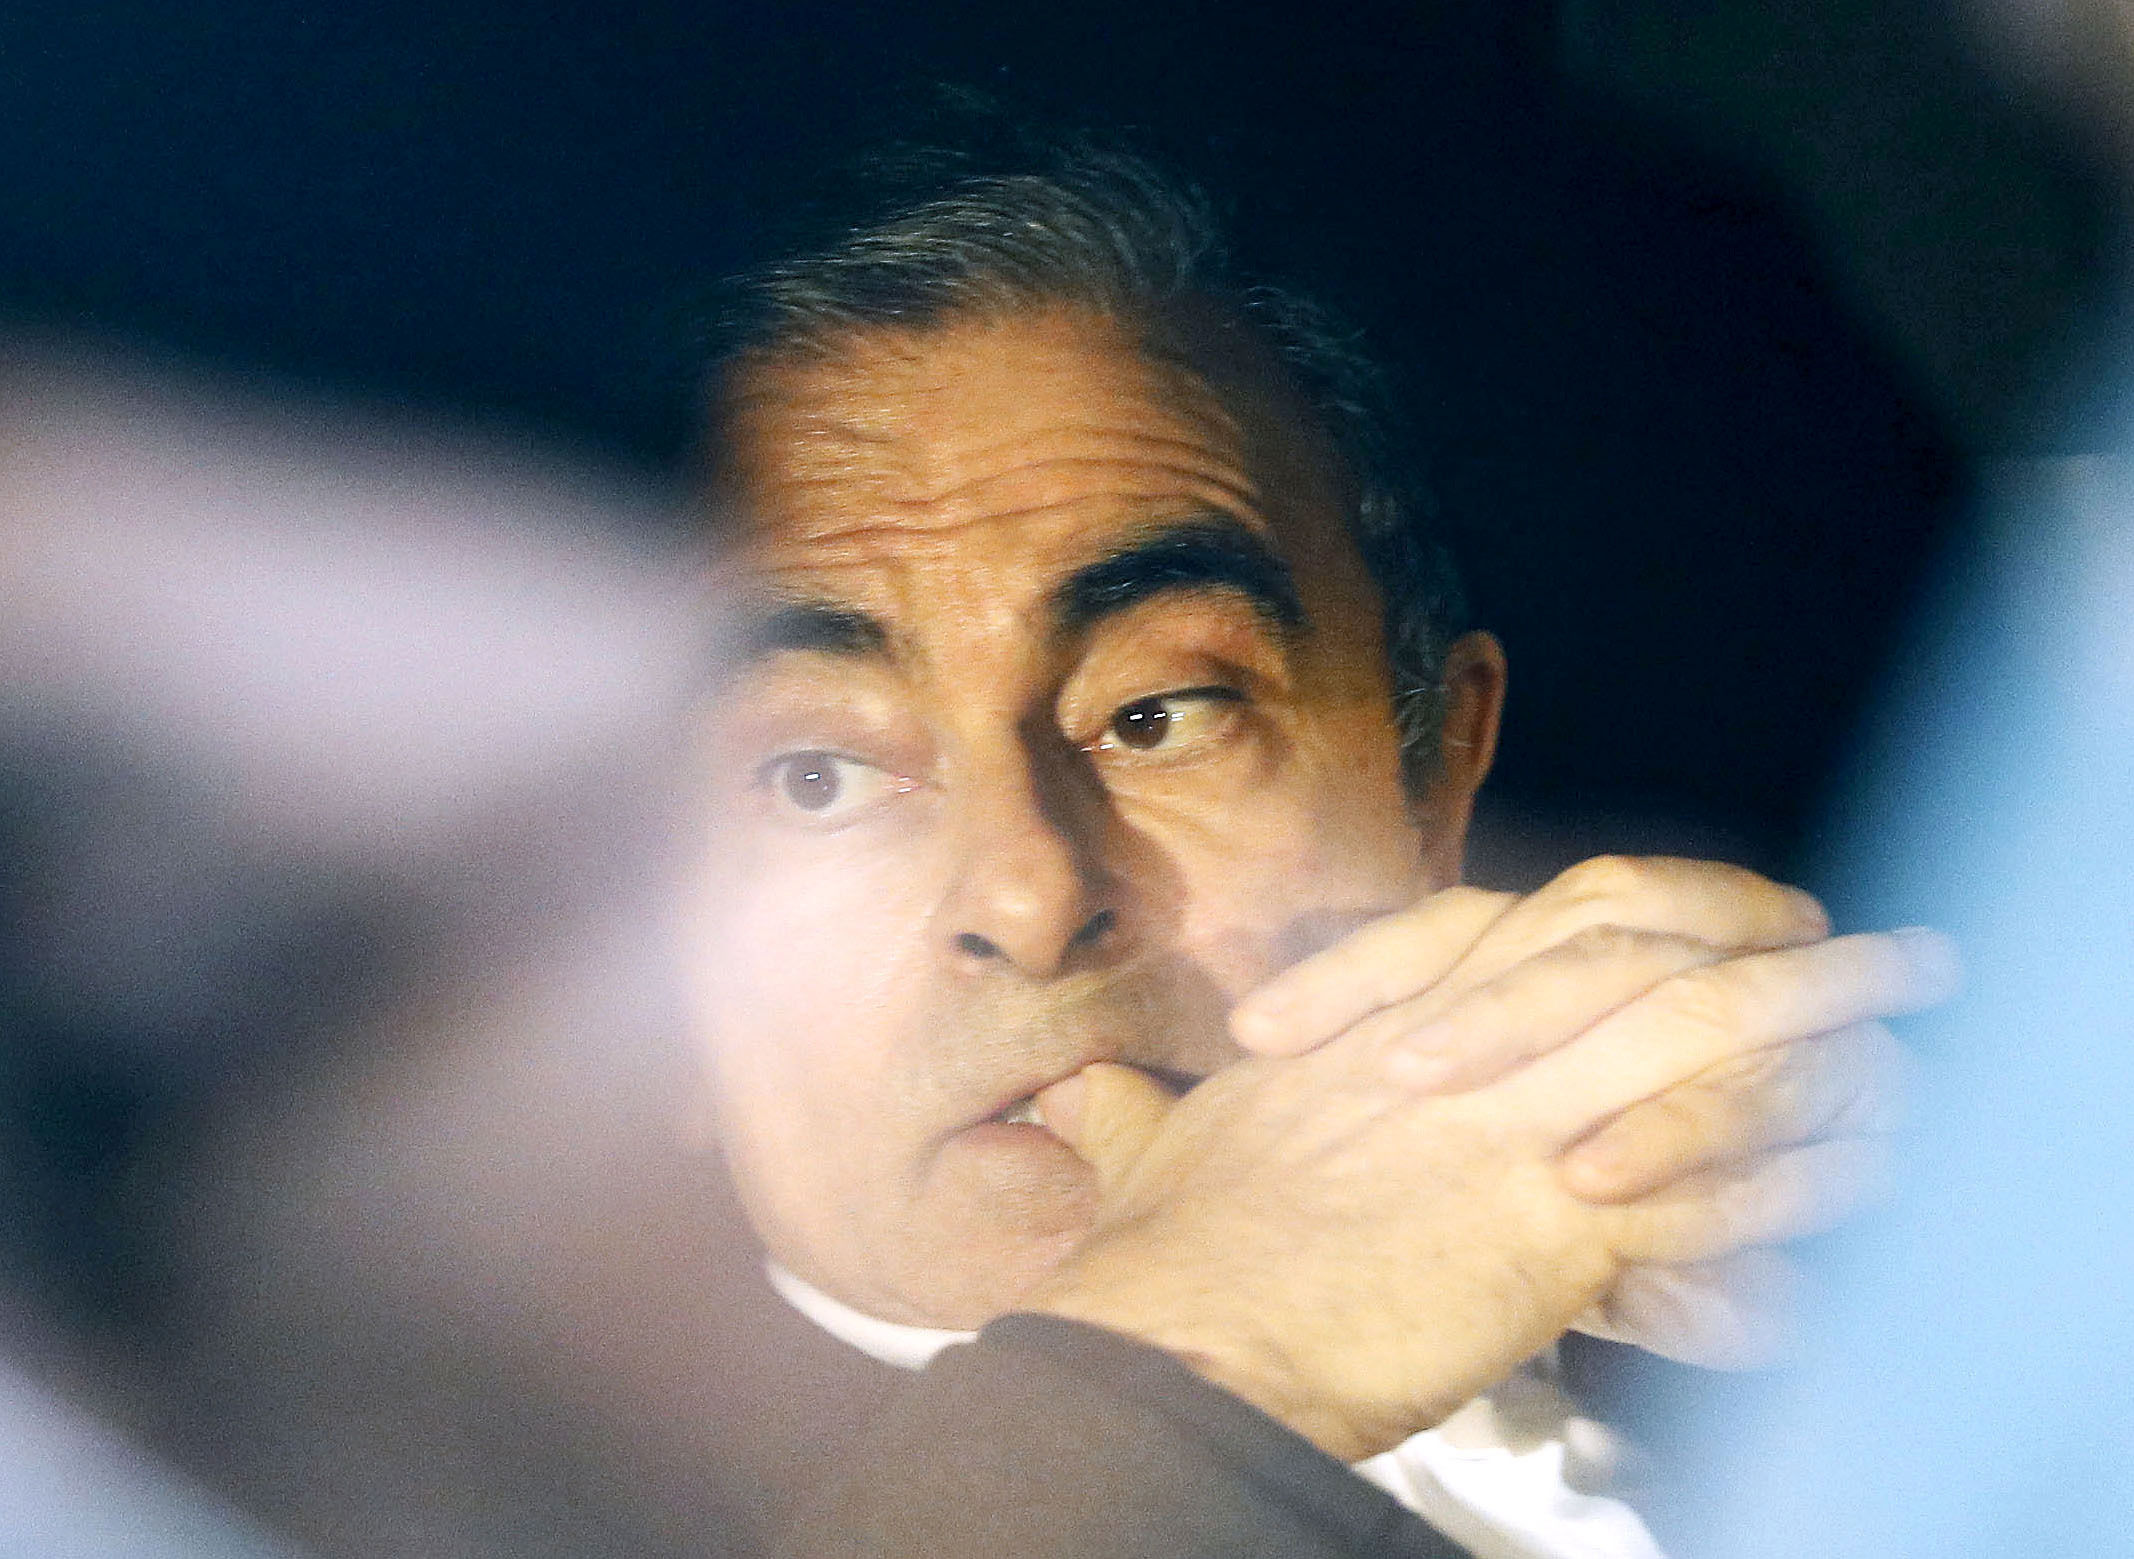 Carlos Ghosn rides in a car after being released from detention